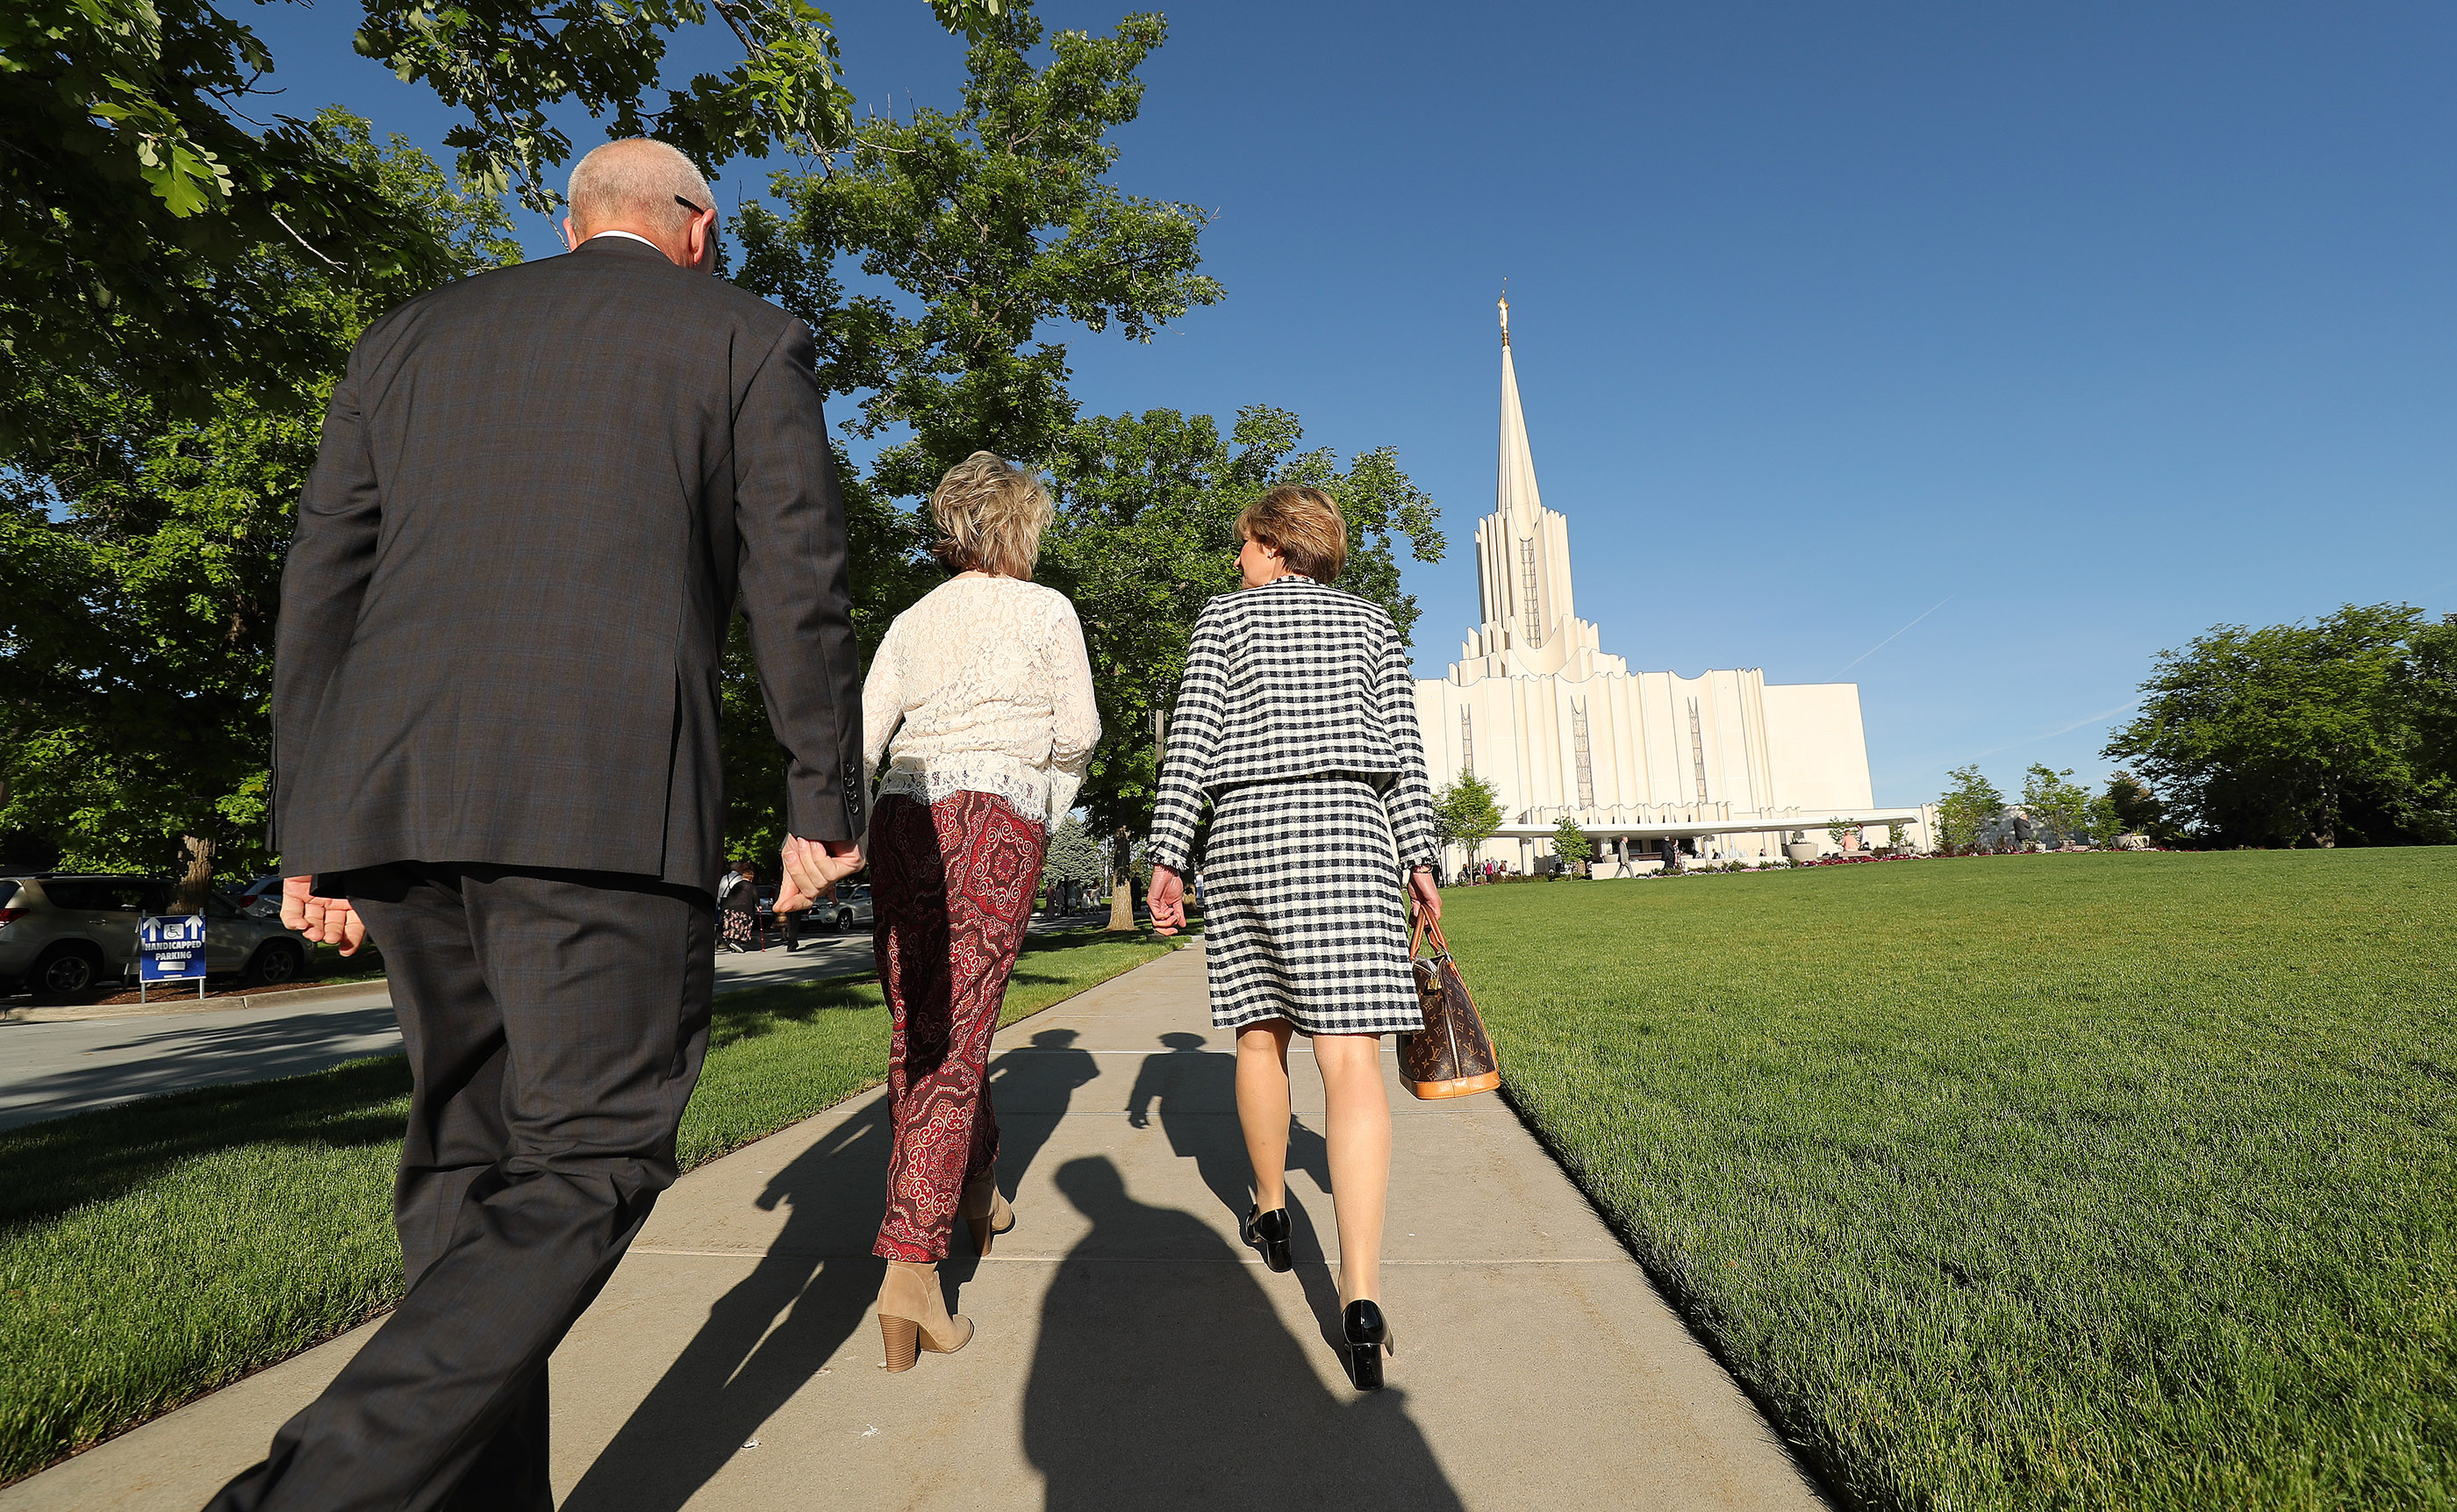 Attendees arrive for the Jordan River Utah Temple as it is rededicated in South Jordan on Sunday, May 20, 2018.